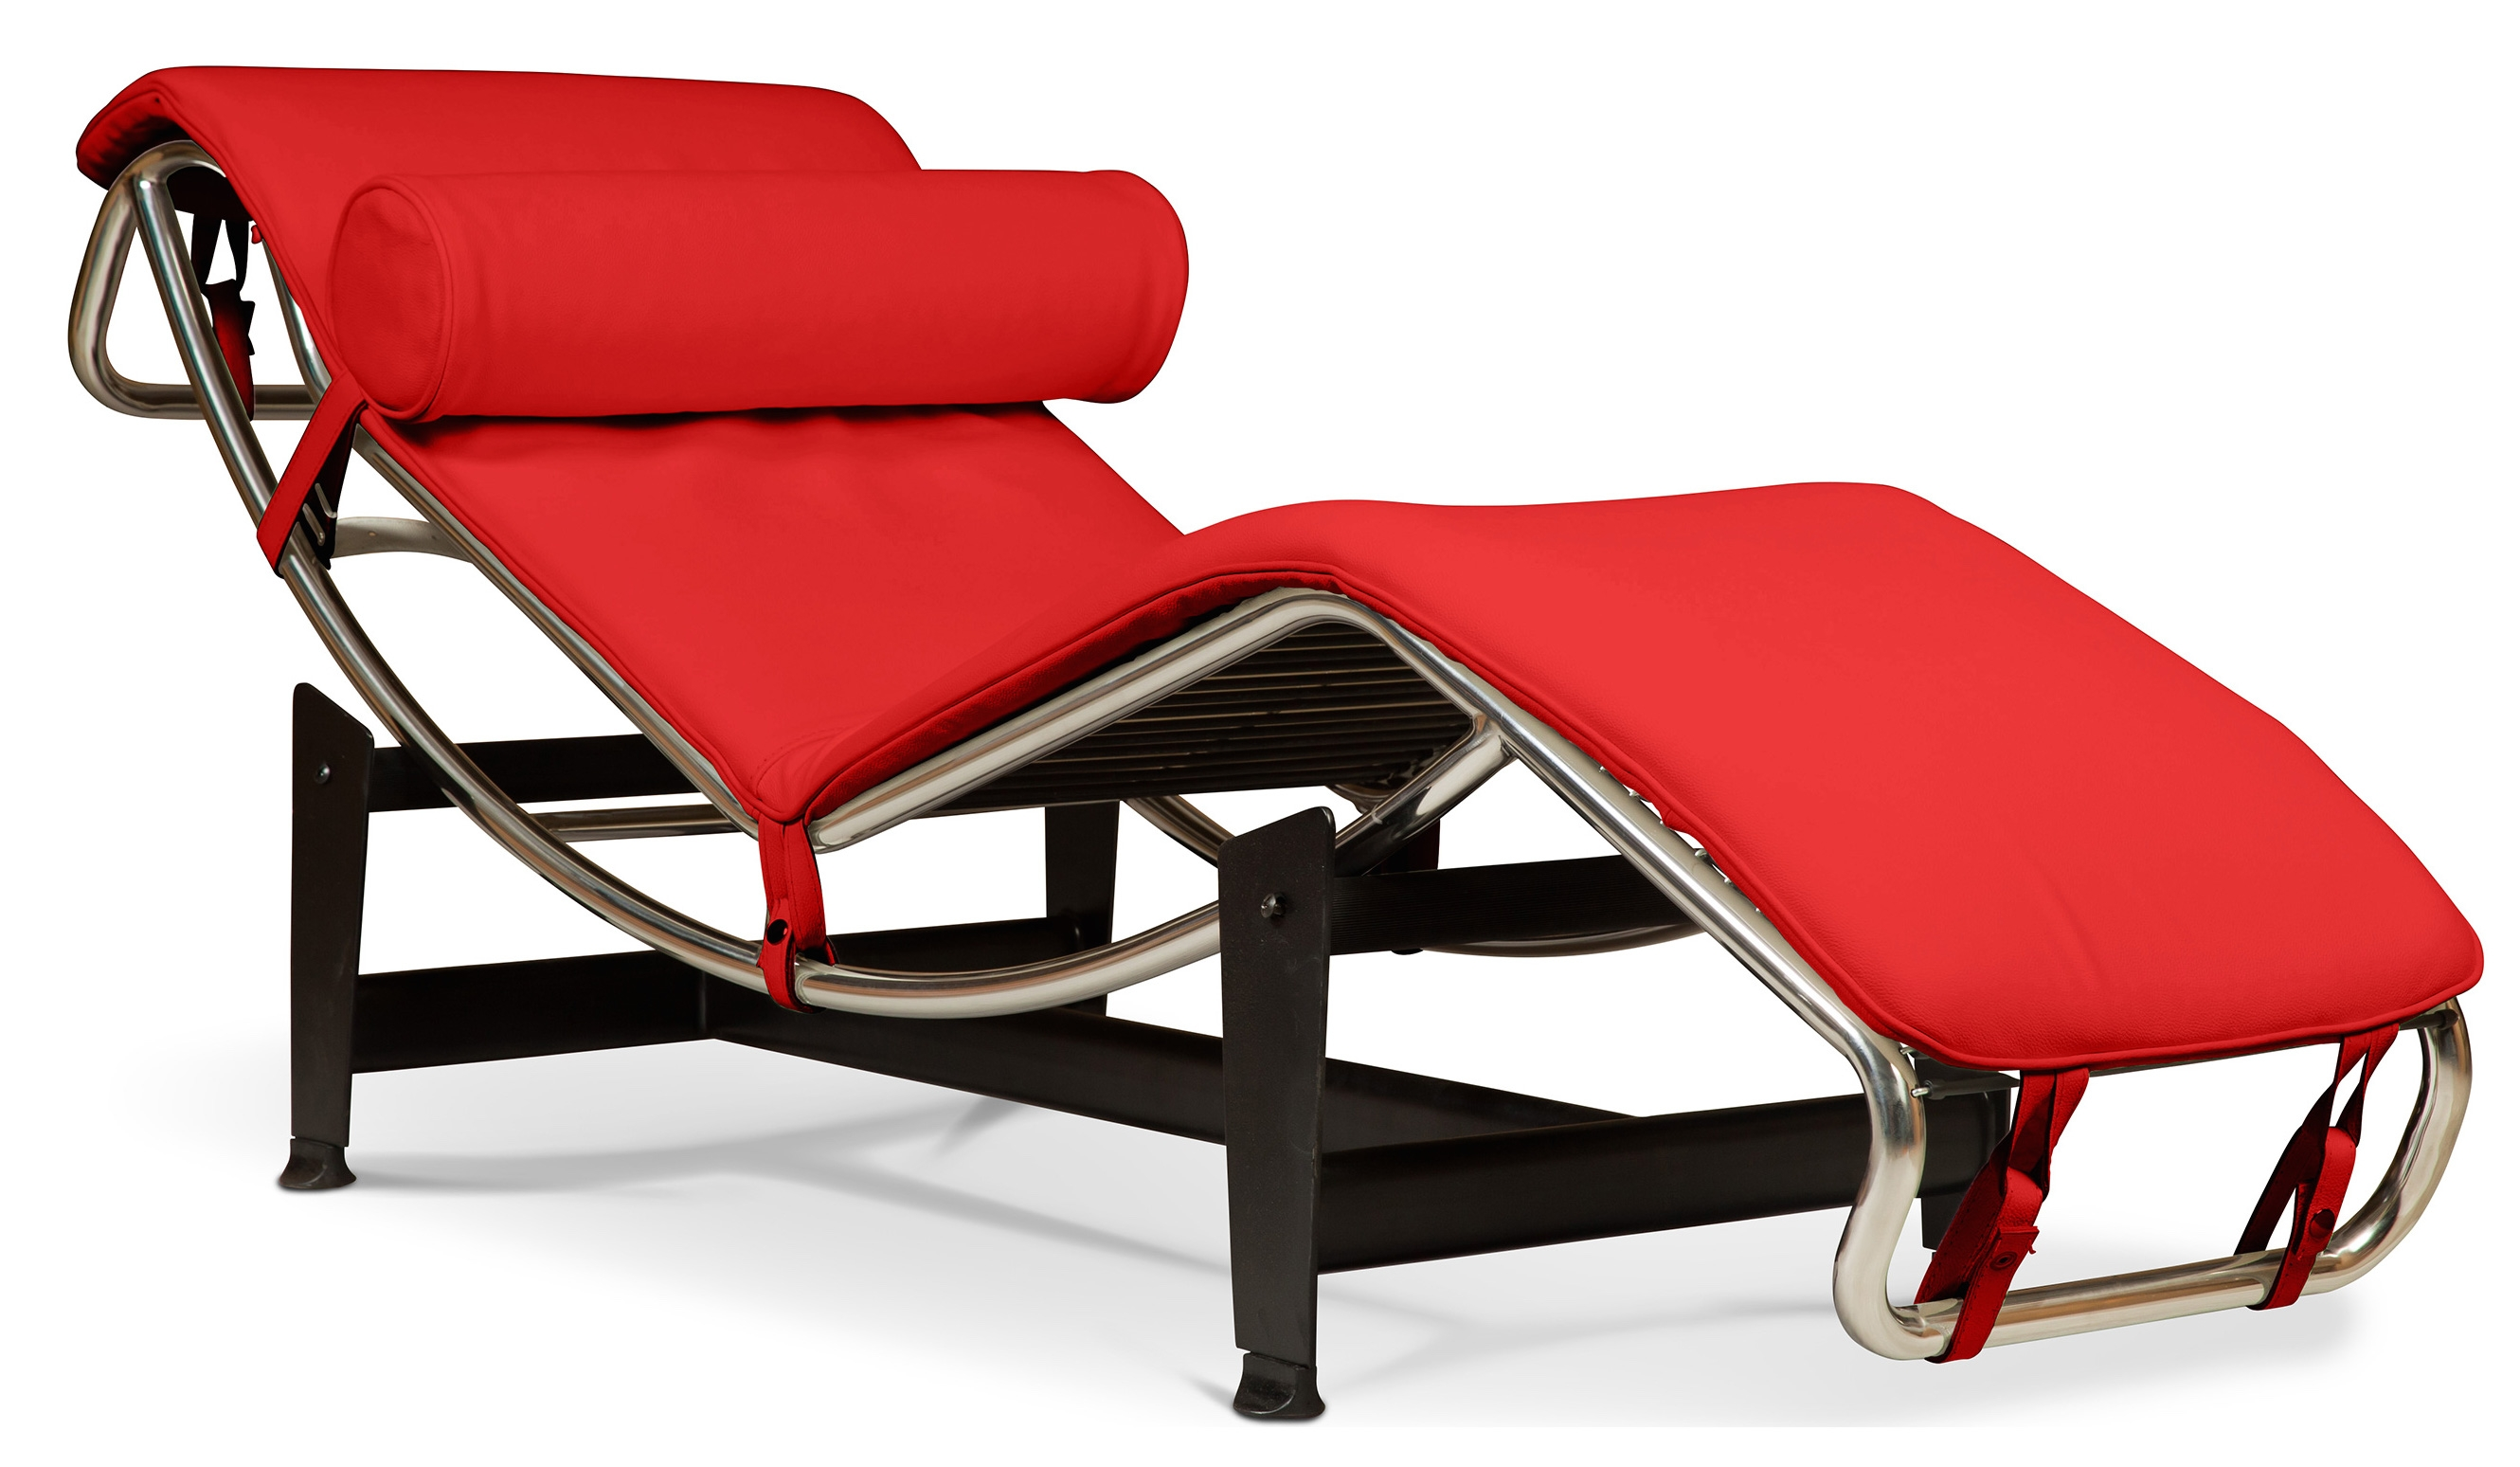 chaise longue simili rouge inspir lc4 de le corbusier. Black Bedroom Furniture Sets. Home Design Ideas